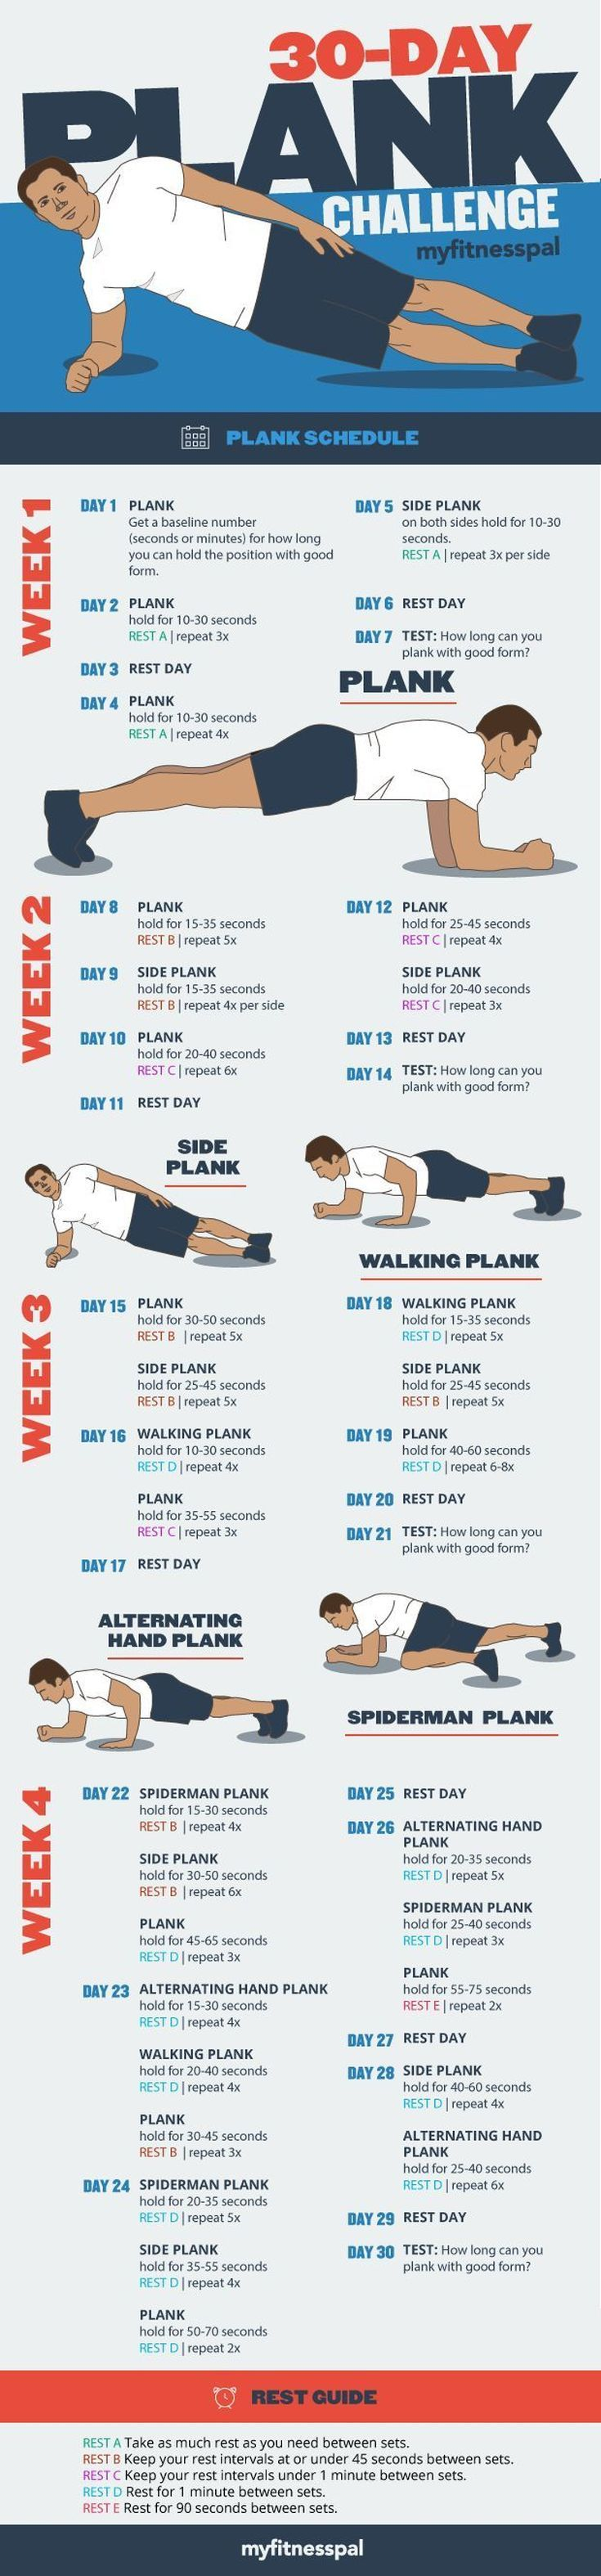 Use These Pinterest Workouts for Your Next Home-Based Routine: 30-Day Plank Chal…